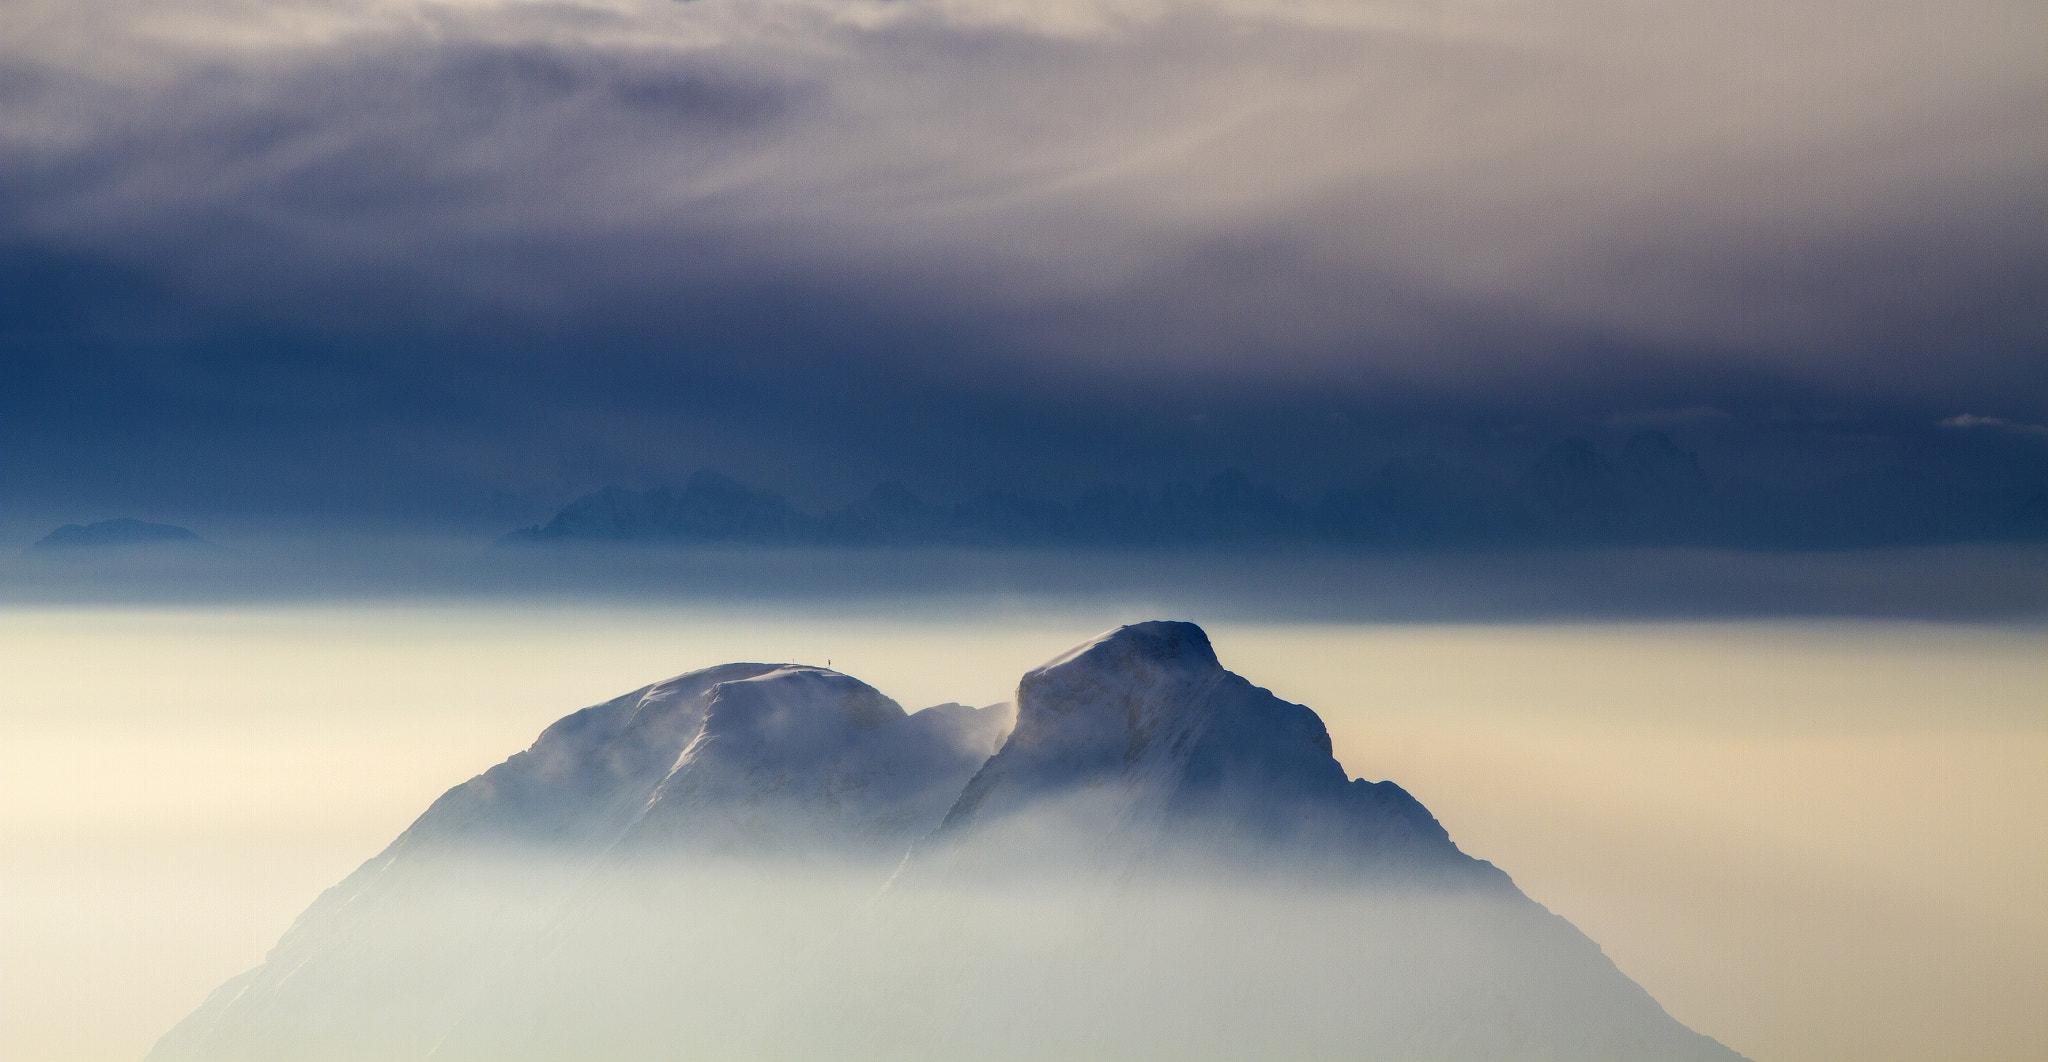 Photograph Mountain Abstract by Brad Hays on 500px